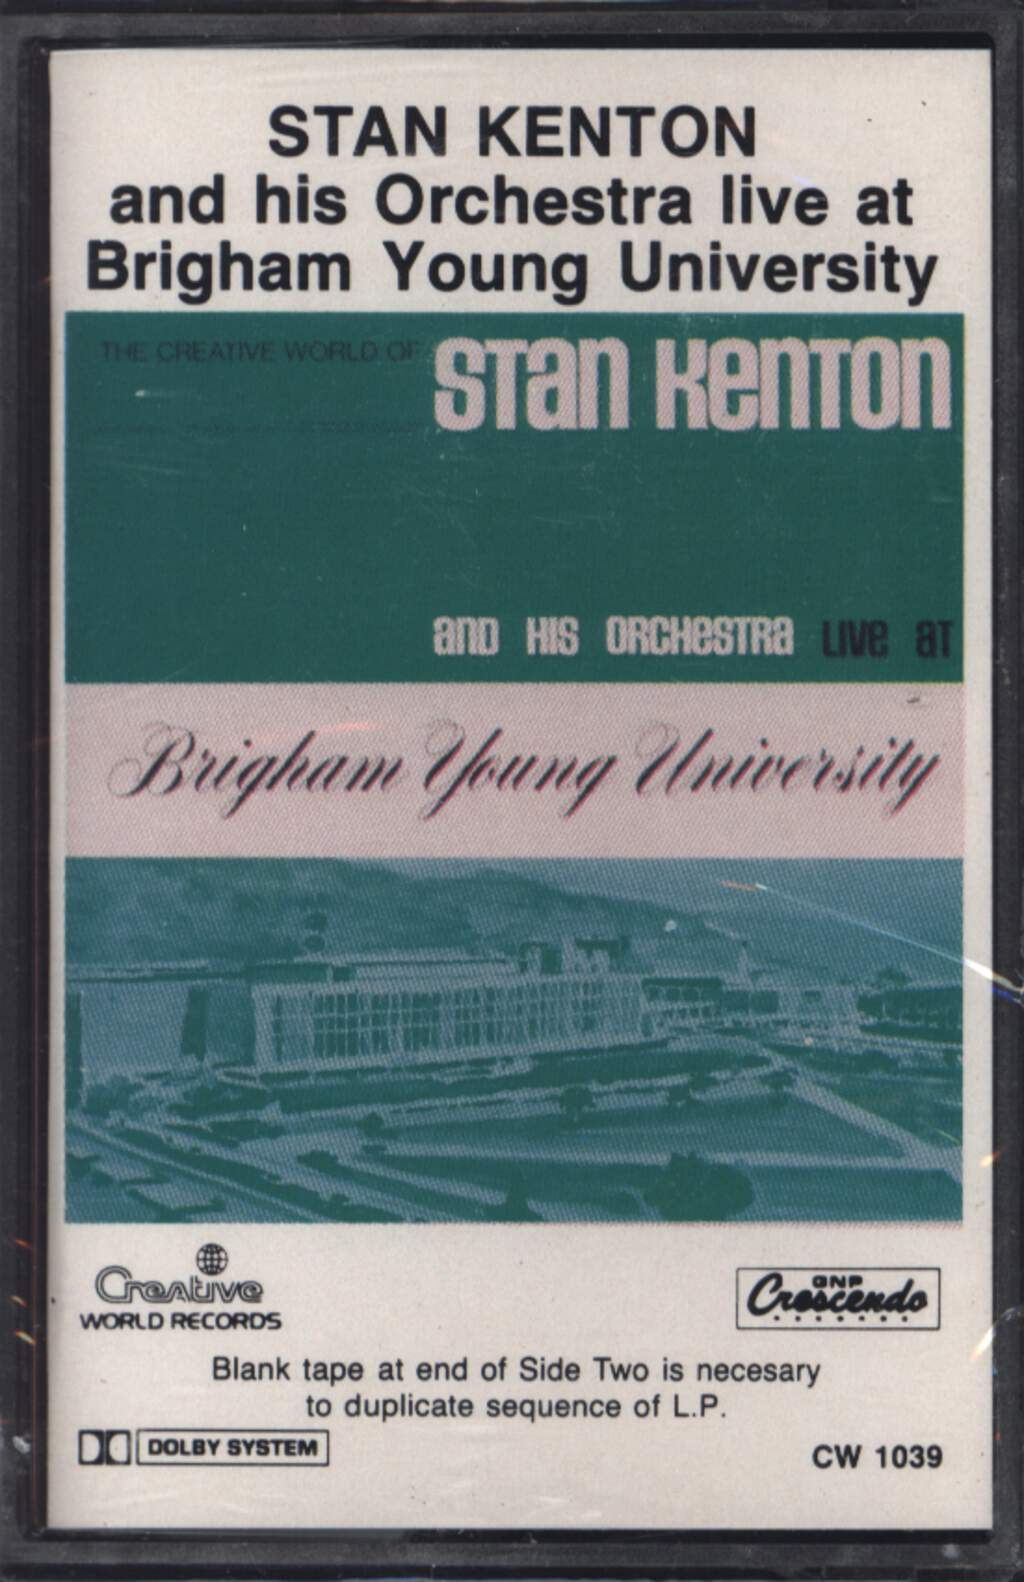 Stan Kenton And His Orchestra: Live At Brigham Young University, Compact Cassette